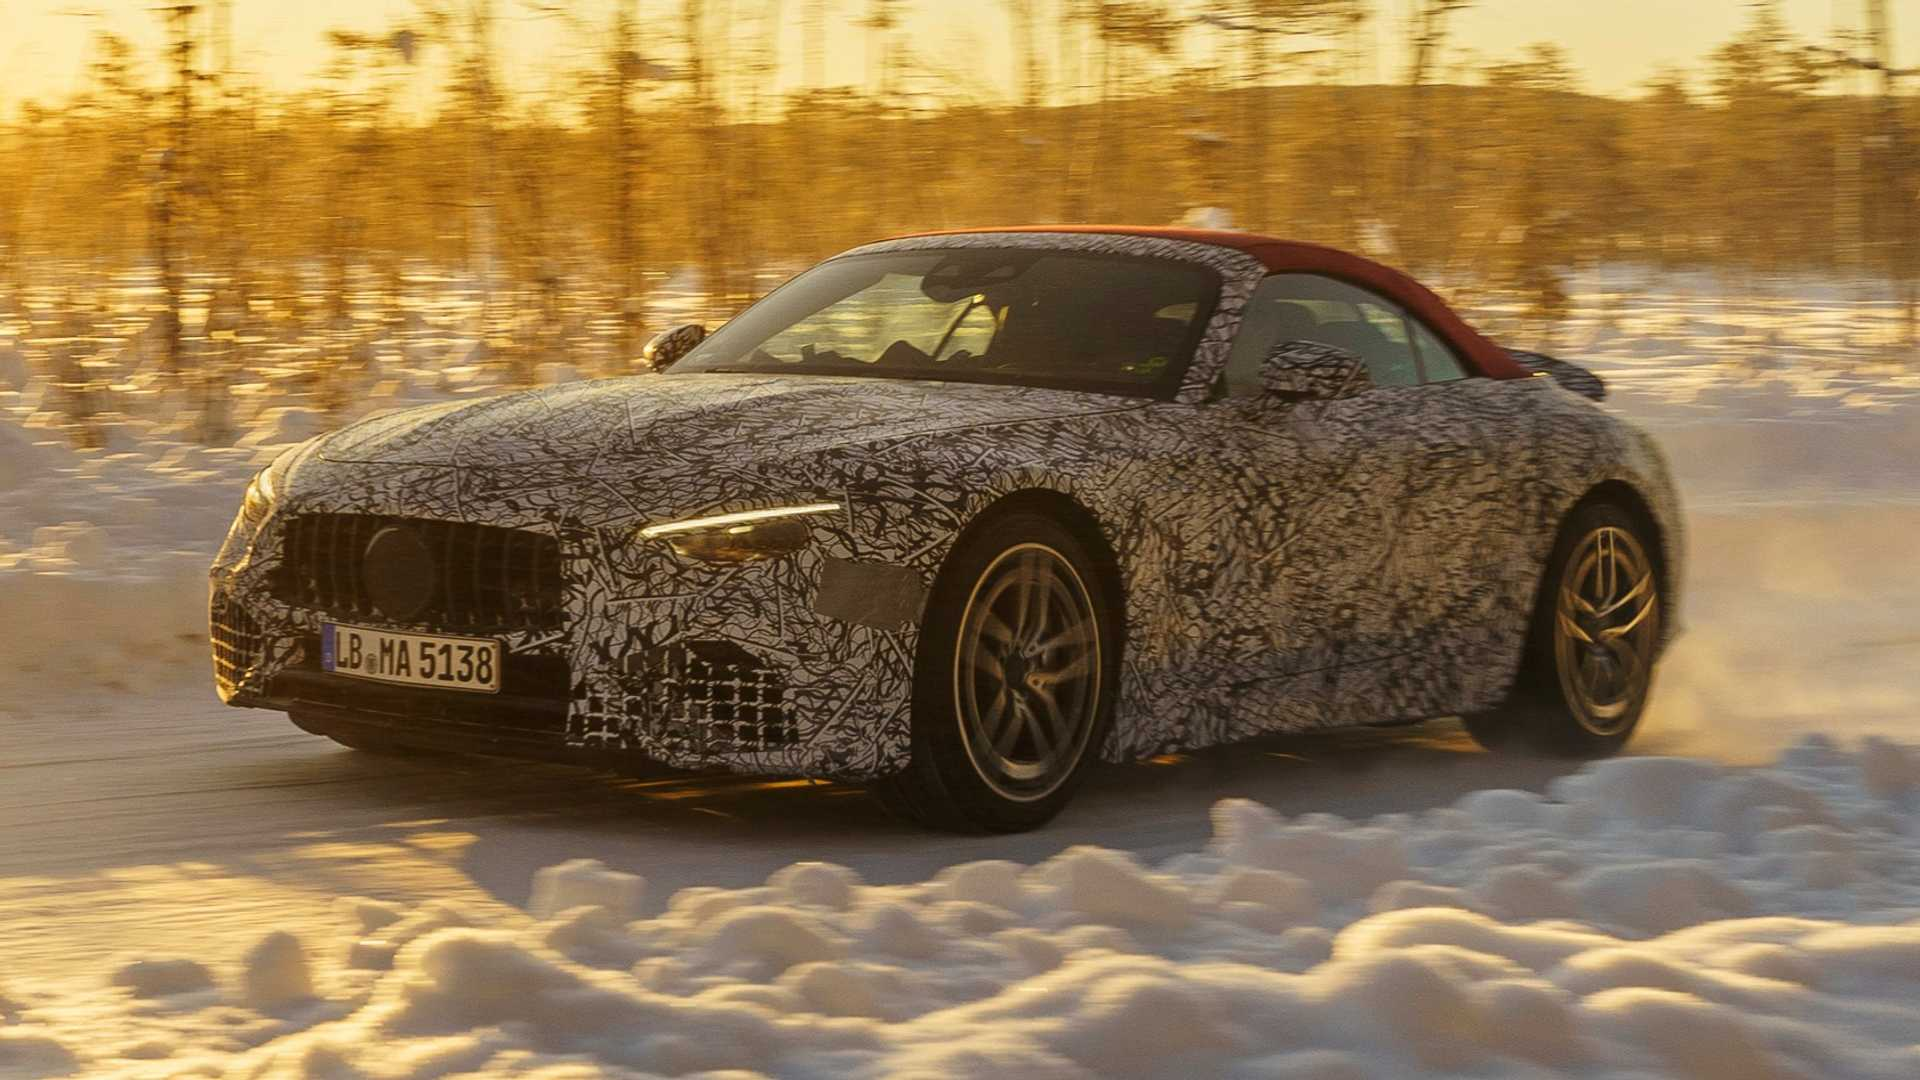 New Mercedes SL Enters Final Round Of Winter Tests - Motor1